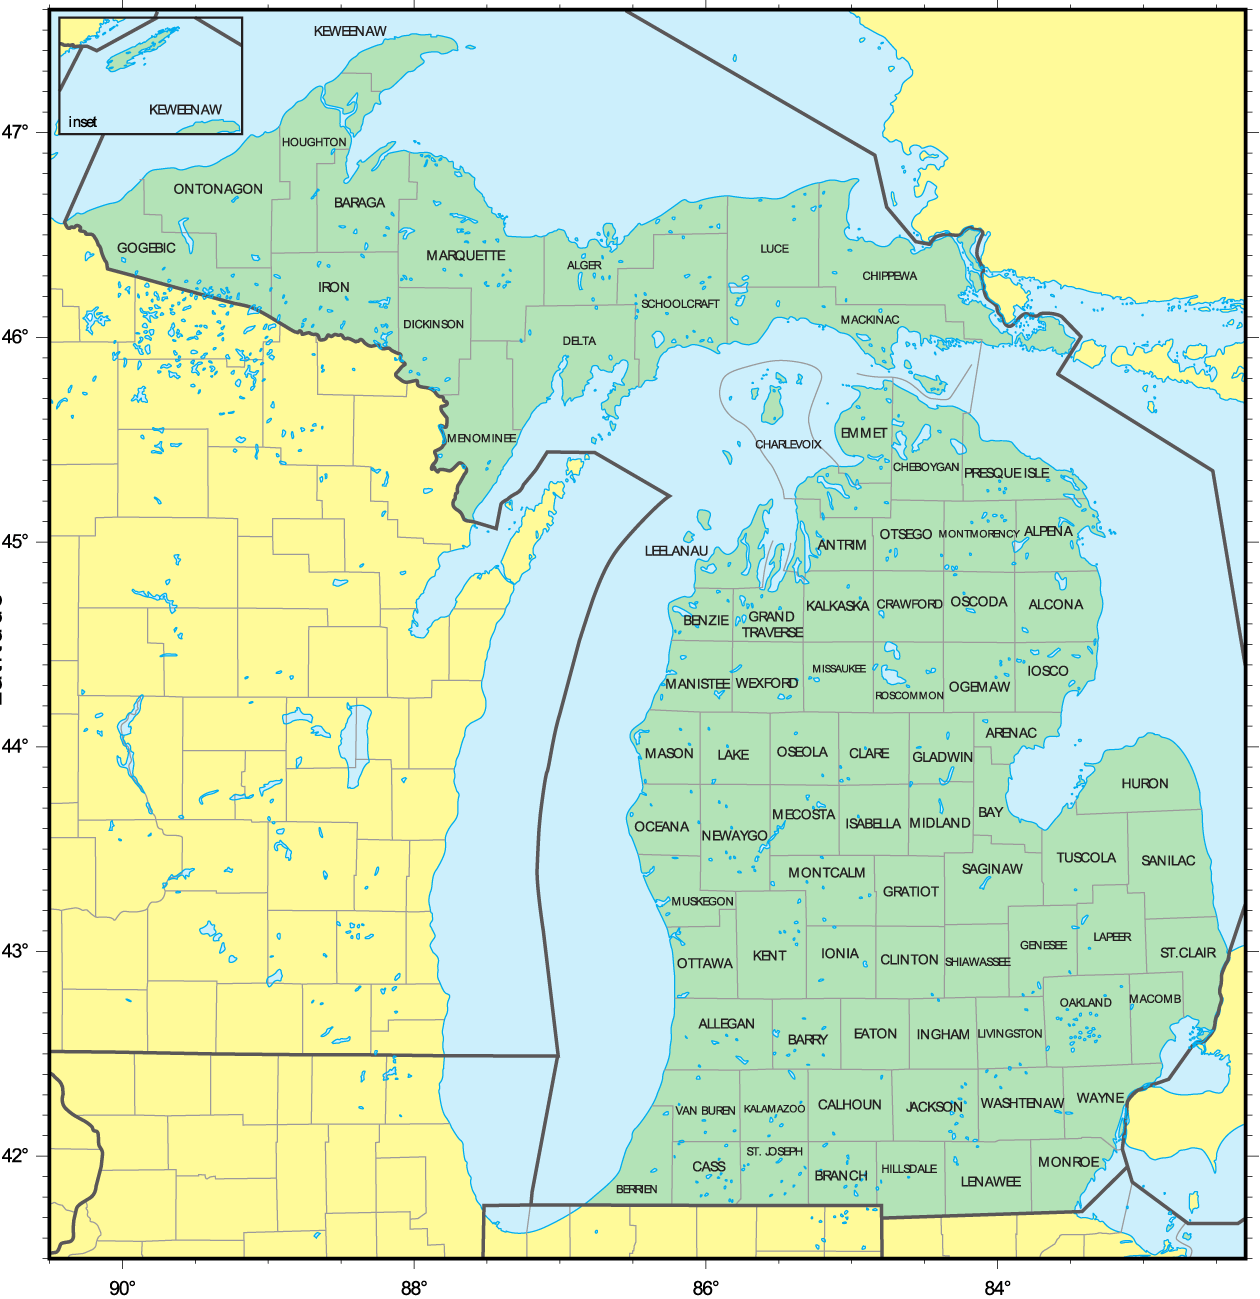 Counties Map of Michigan • Mapsof.net